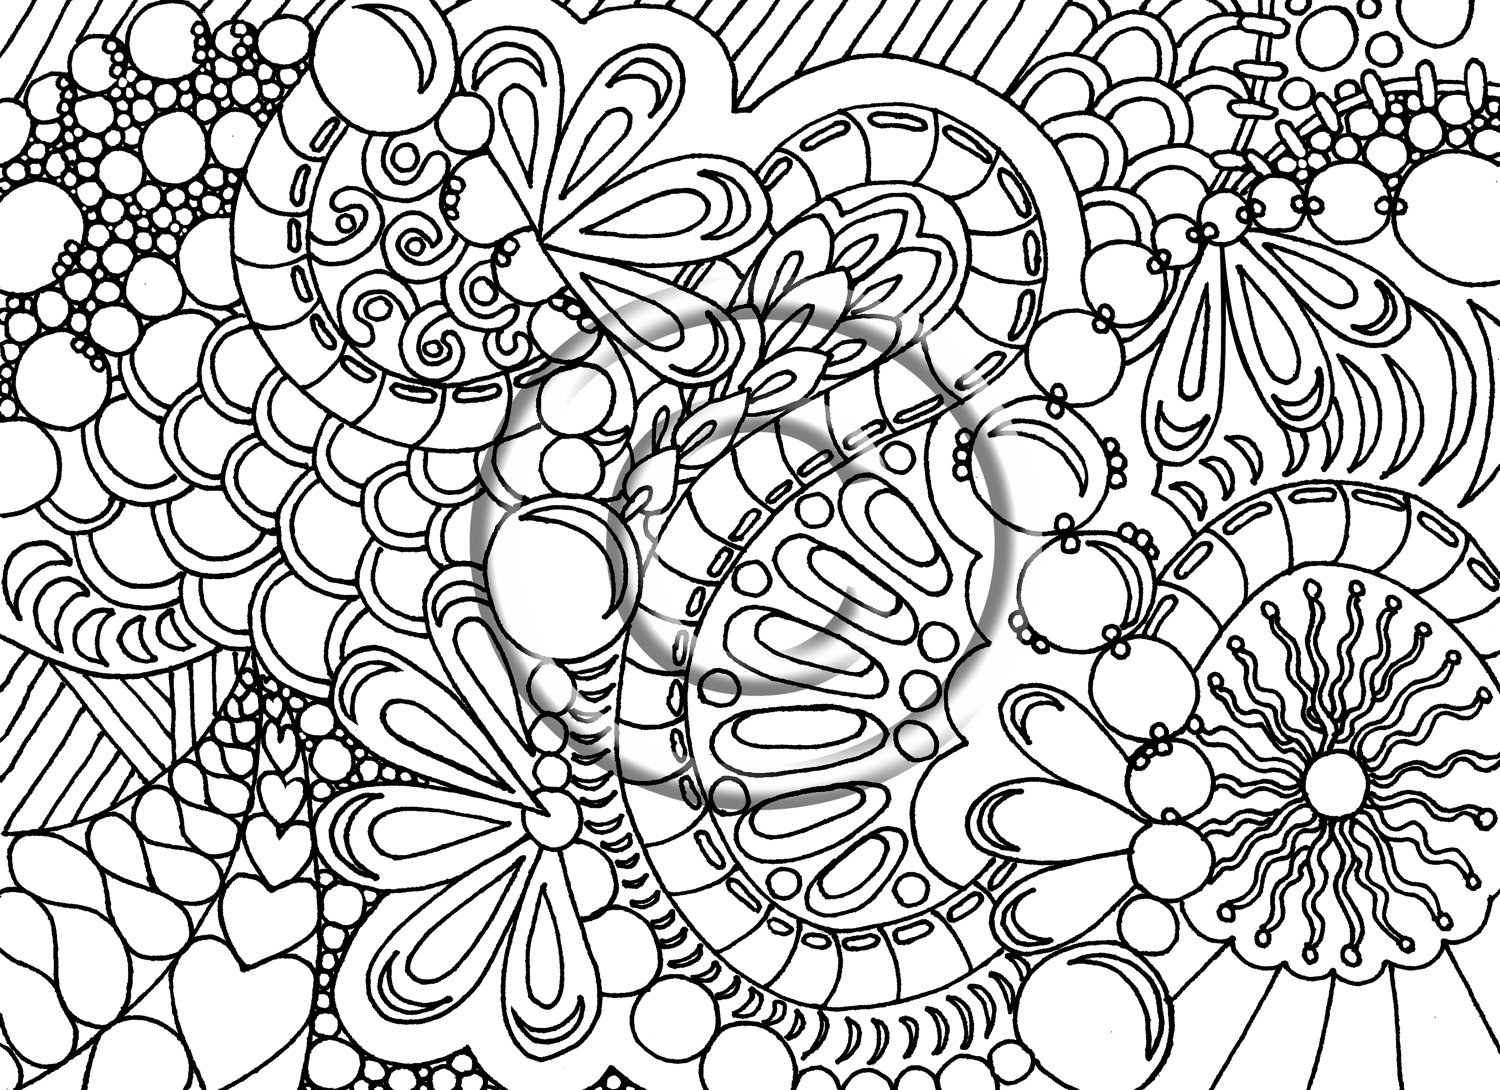 abstract coloring pages to print abstract drawing for kids at getdrawings free download coloring to print abstract pages